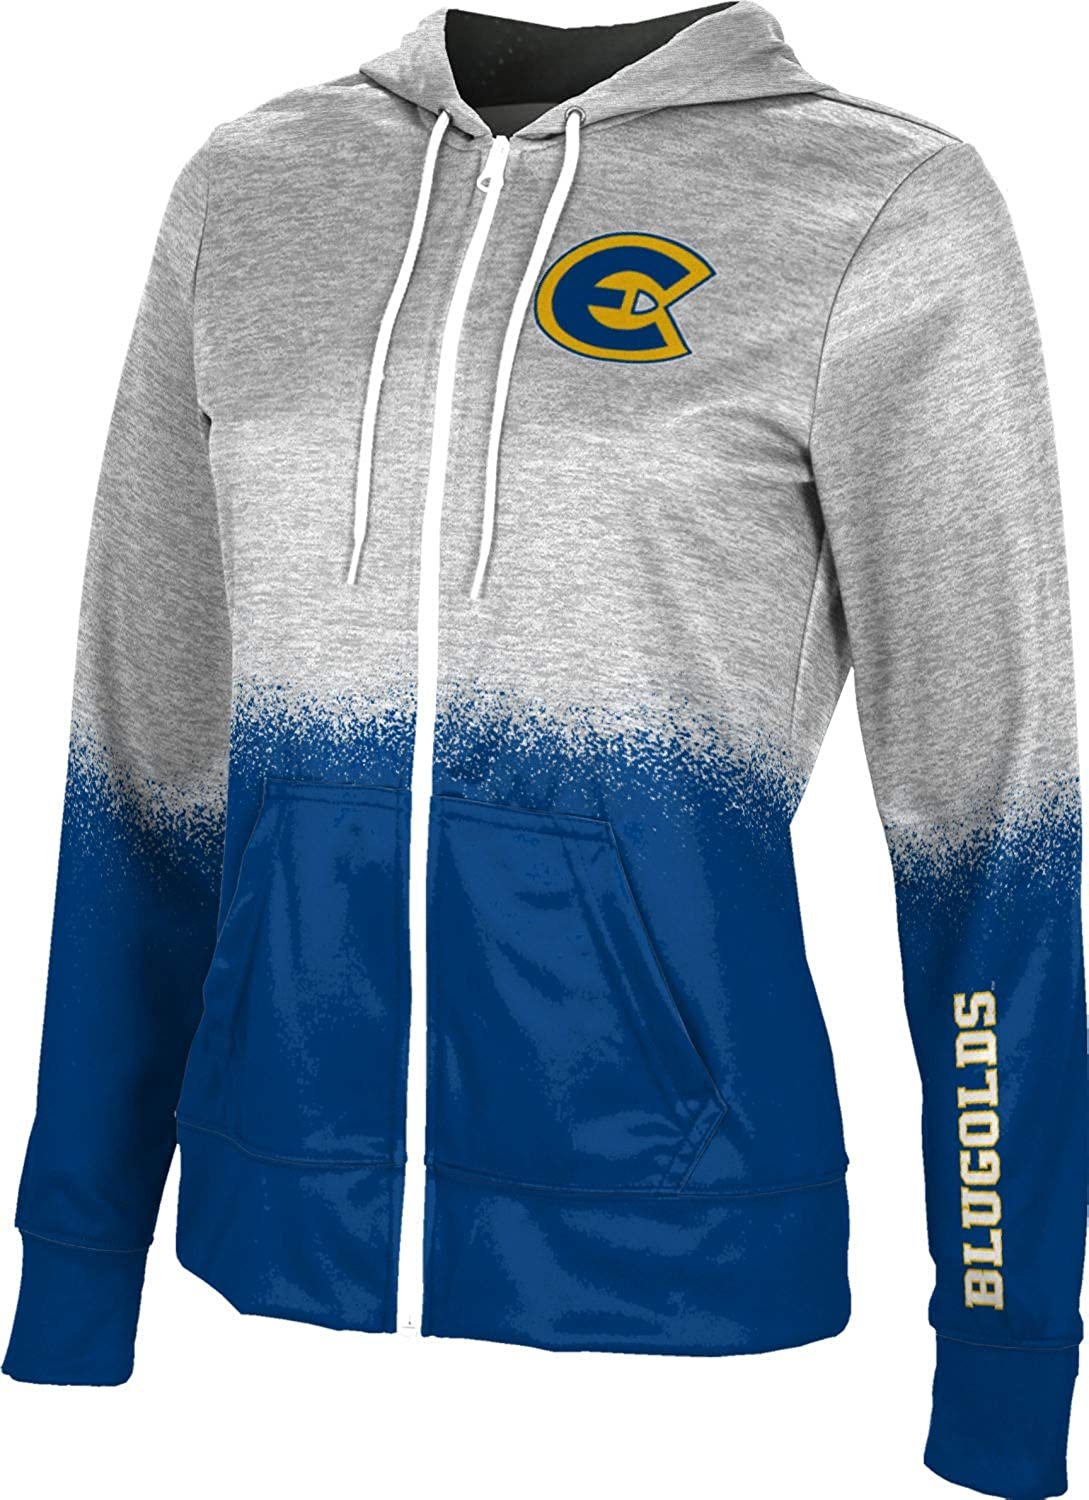 University of Wisconsin-Eau Claire Popular brand in the world Girls' School High quality new Hoodie Zipper